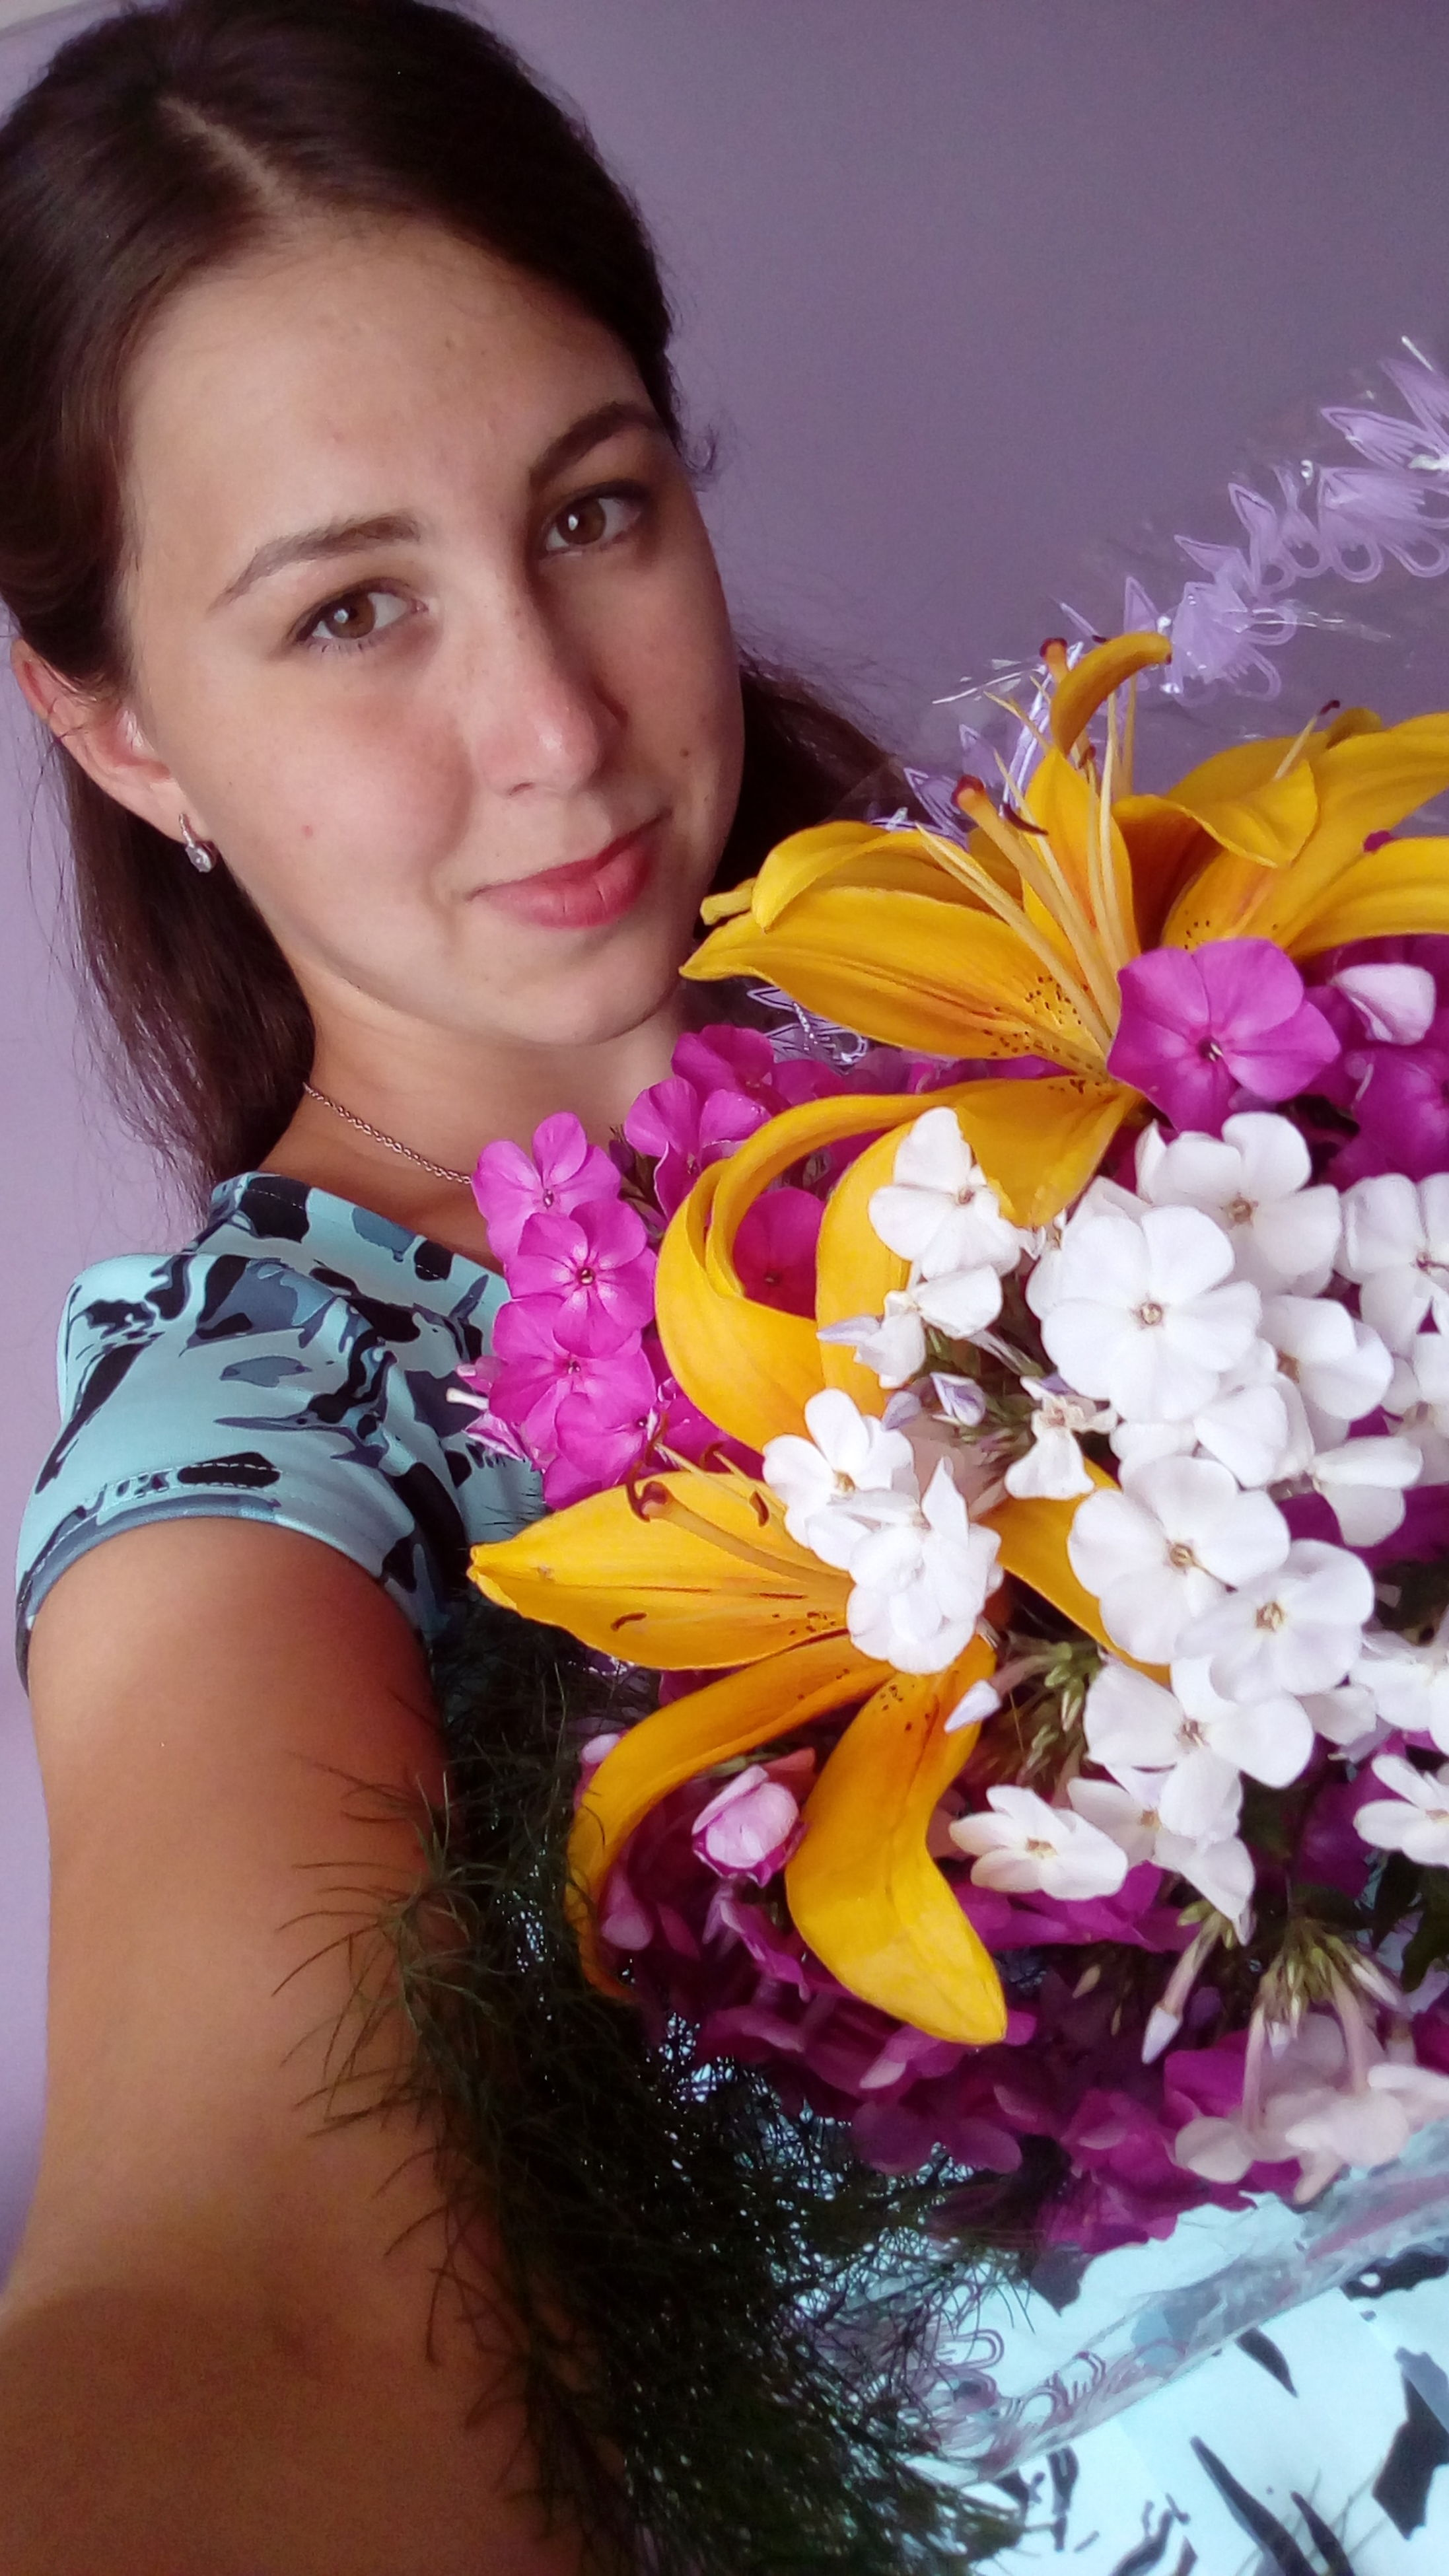 flower, looking at camera, portrait, one person, smiling, real people, young adult, lifestyles, happiness, beautiful woman, young women, bouquet, freshness, indoors, close-up, fragility, day, nature, flower head, florist